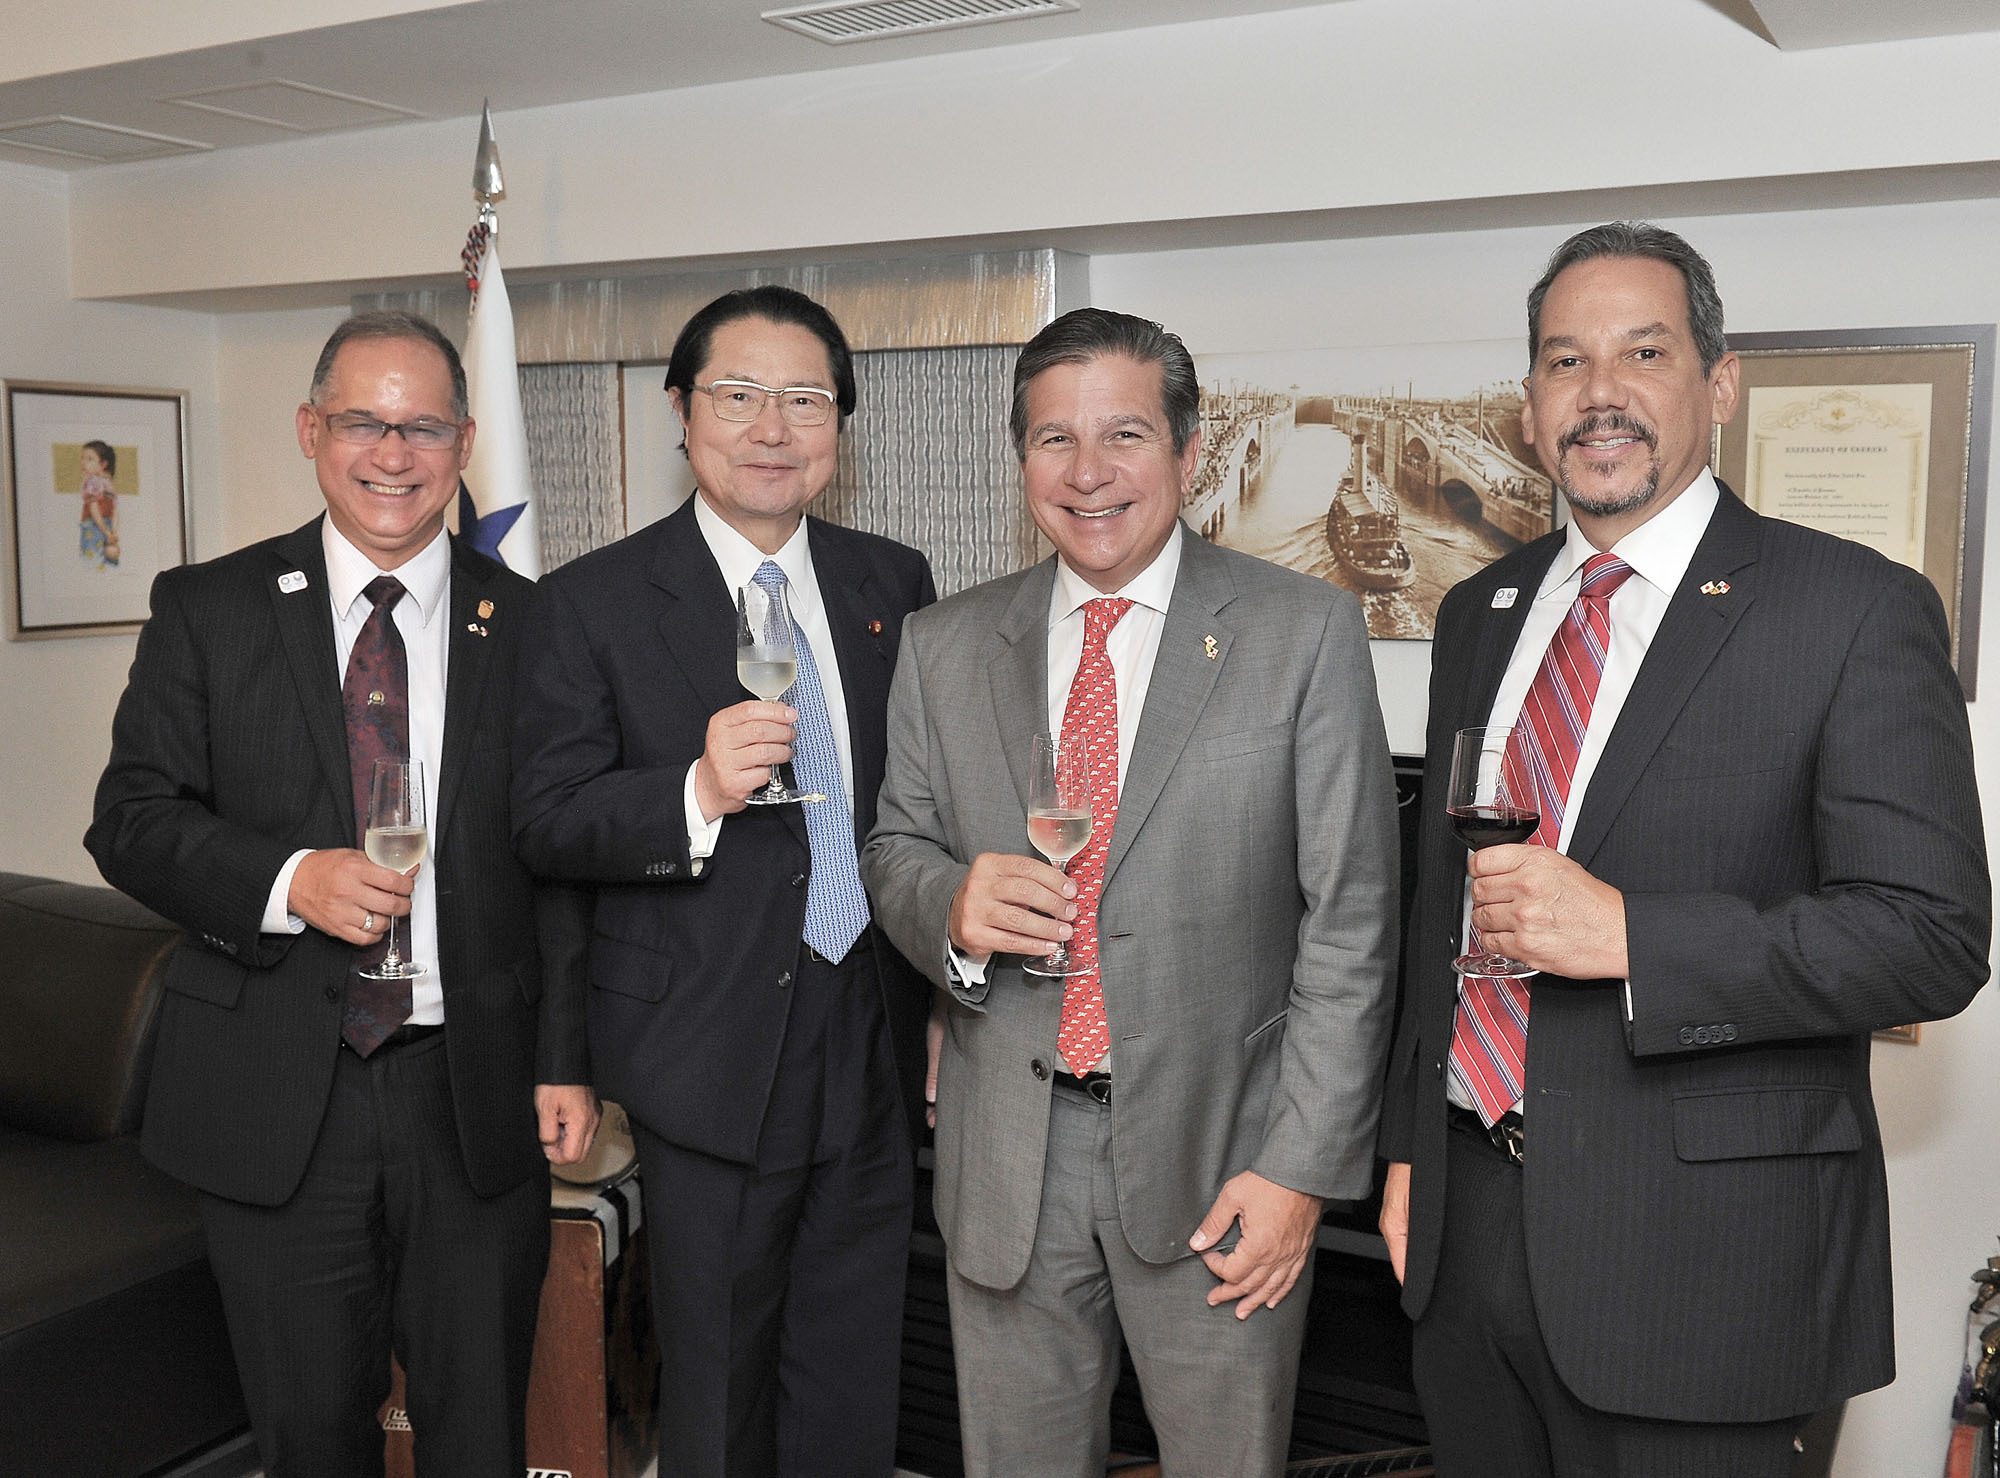 Jose Luis Varela (second from right), president of the Panama-Japan Inter-Parliamentary Friendship League, poses for a photo alongside (from left) Panama Ambassador Ritter Diaz, Seishiro Eto, president of the Panama-Japan Inter-Parliamentary League, and Ivan Picota, a member of the Panama-Japan Inter-Parliamentary Friendship League, during a cocktail party at the ambassador's residence in Tokyo on June 13. | YOSHIAKI MIURA